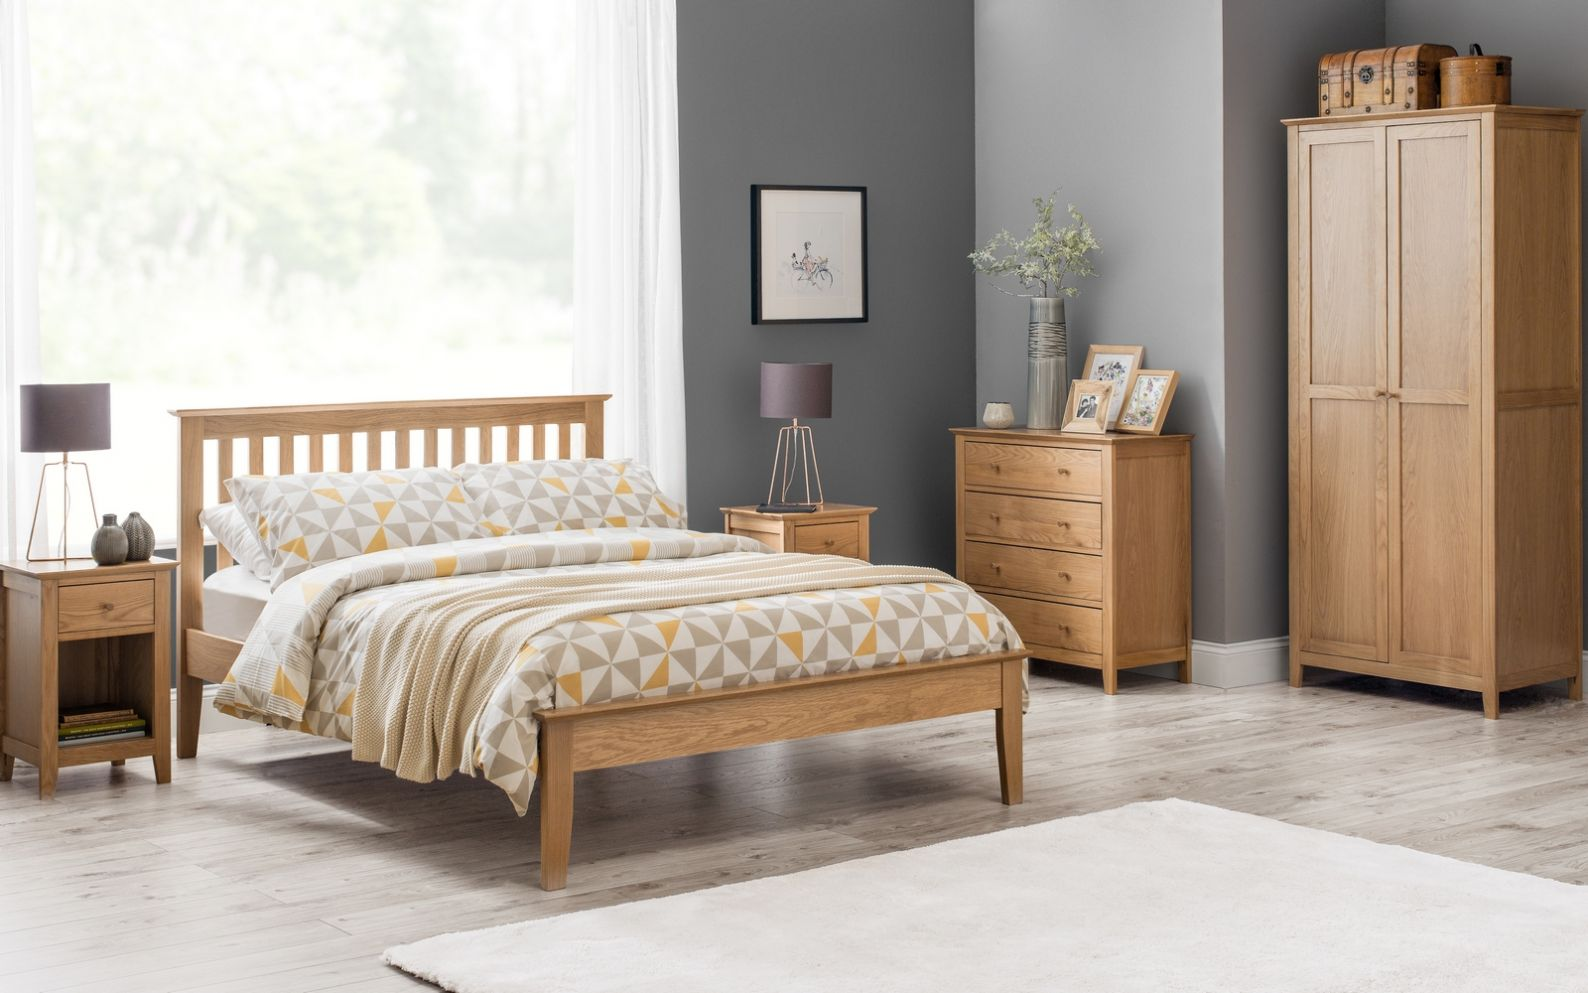 Salerno Oak Bedroom Julian Bowen Limited